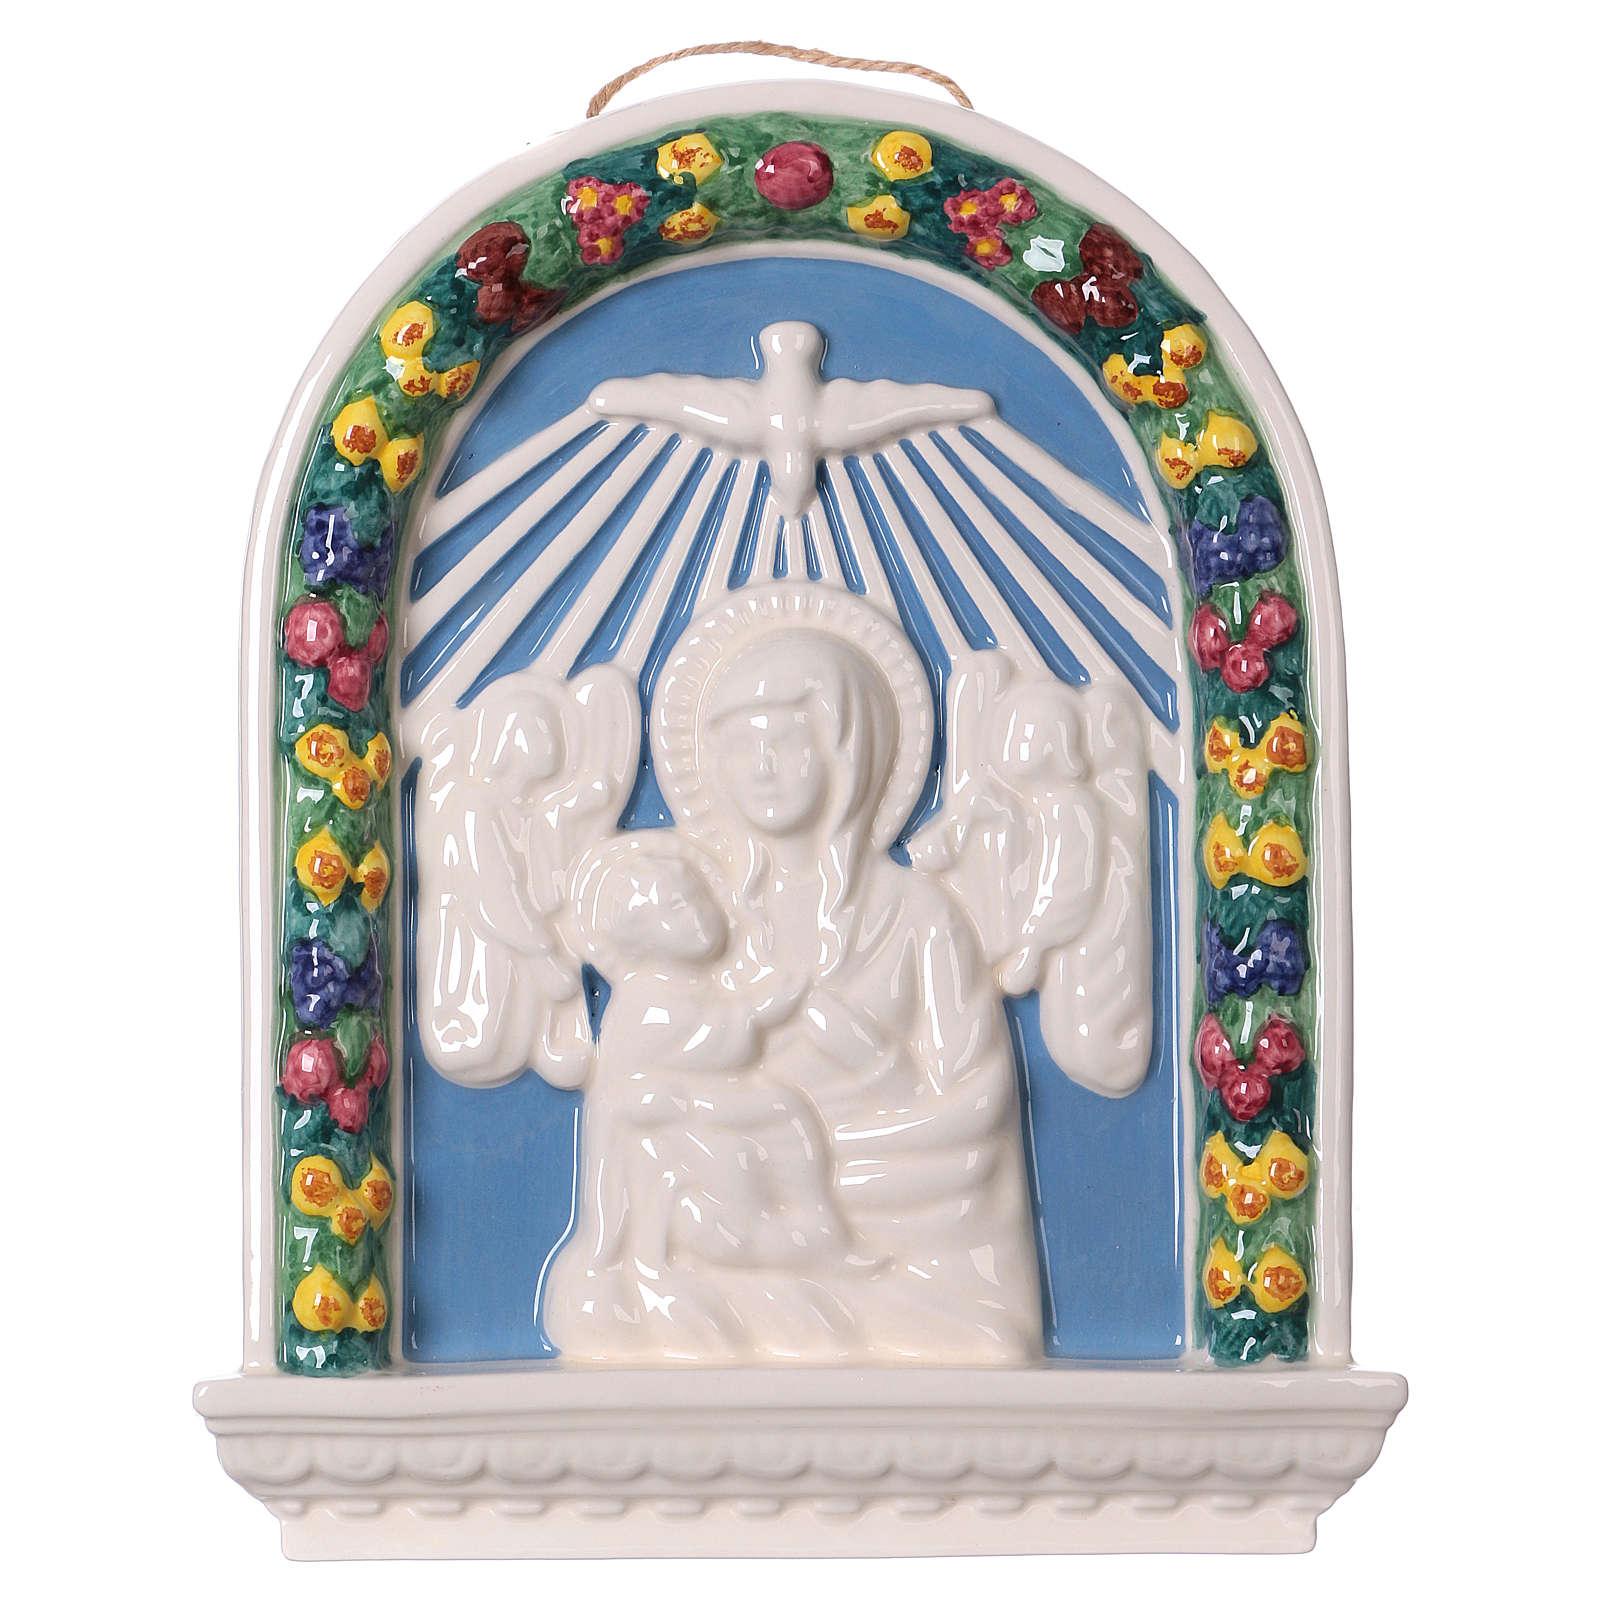 Painted ceramic bas-relief made in Deruta with Virgin Mary and Baby Jesus 30x25 4